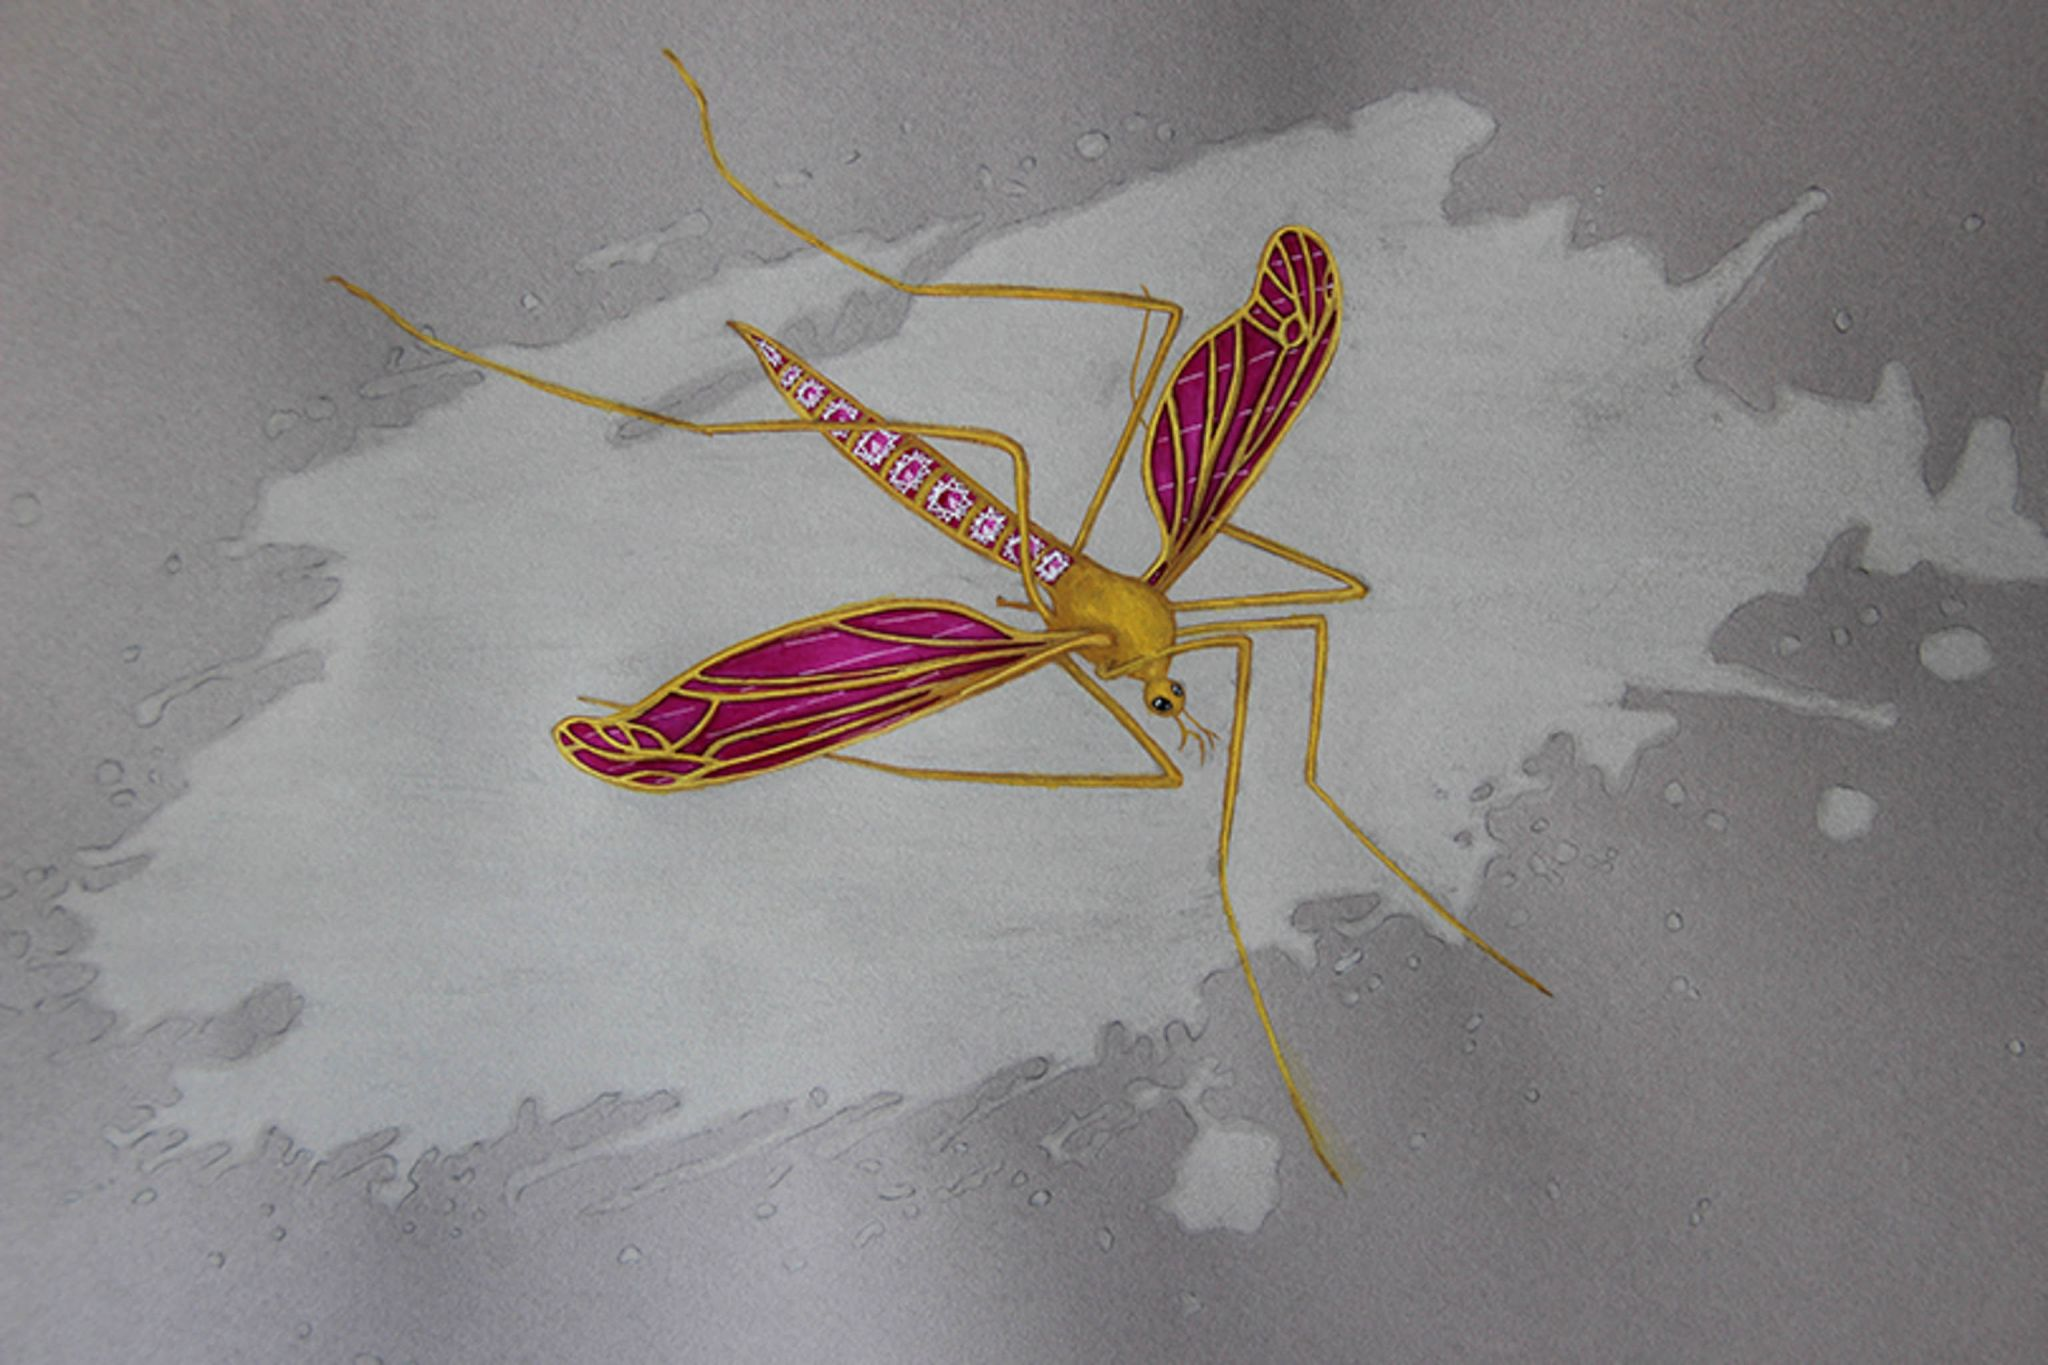 Pink rubellite mosquito insect drawing